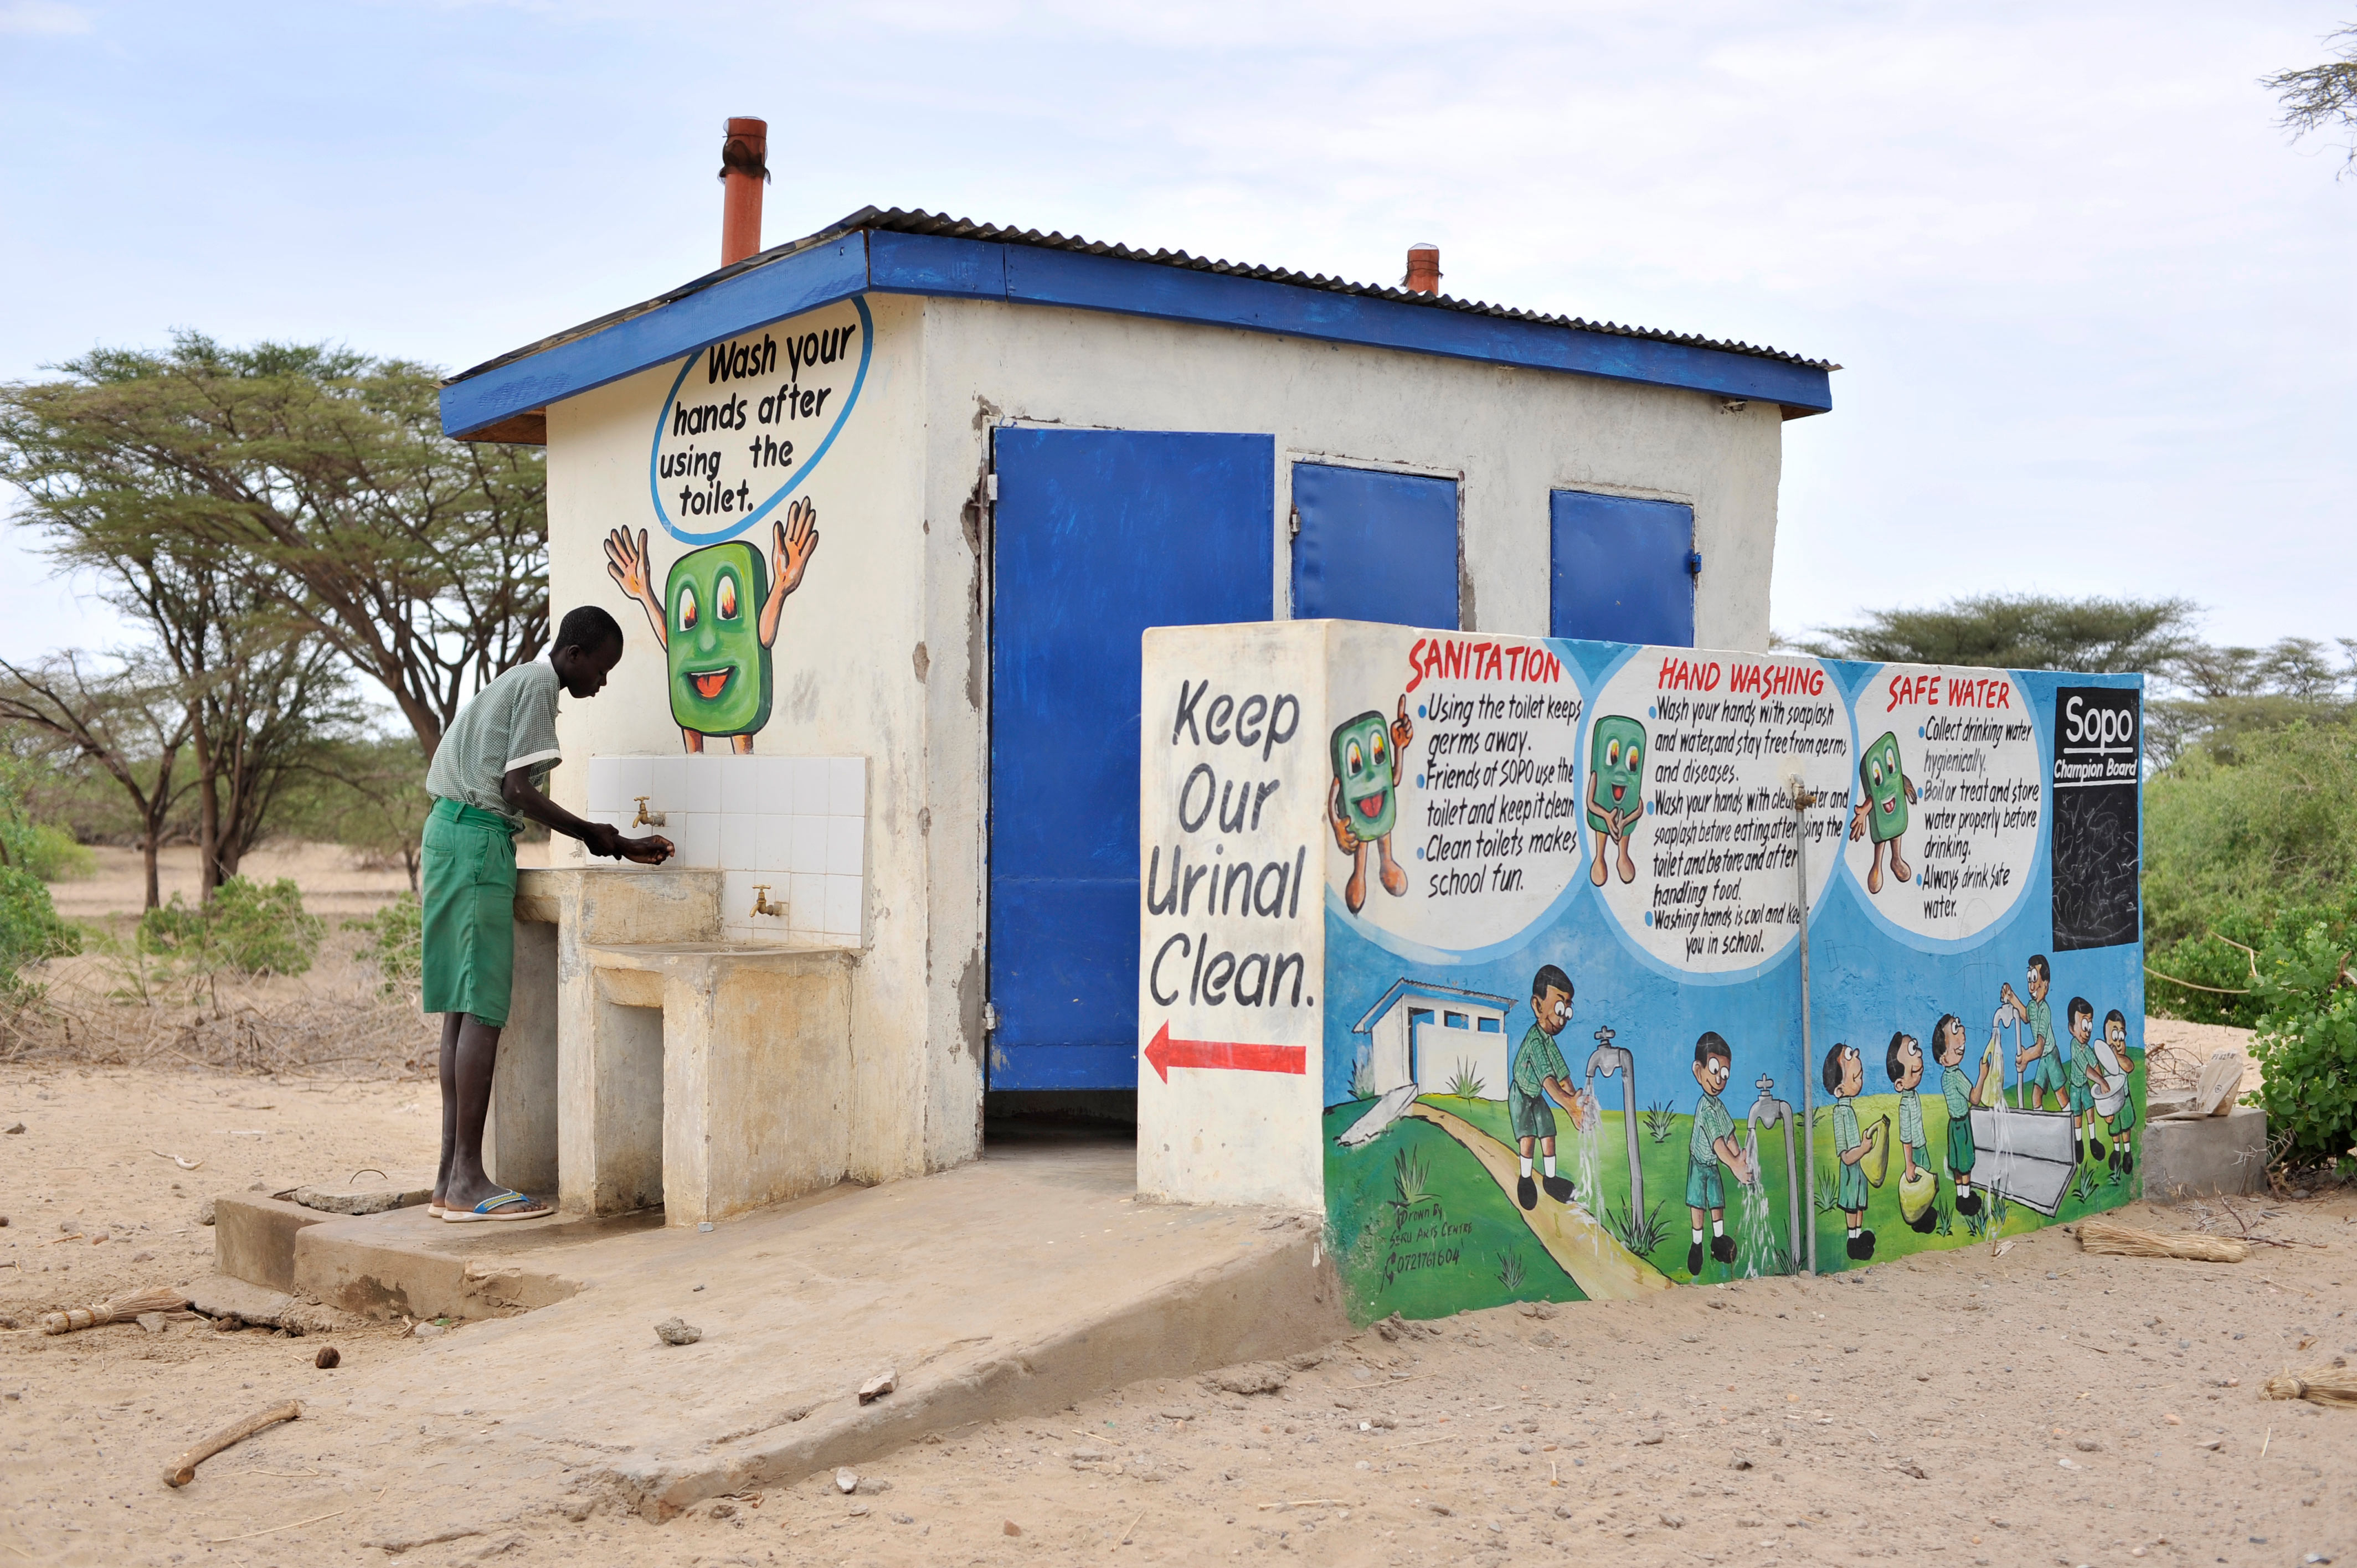 Boy washes his hands at a sink outside a public toilet building painting with informational messages on sanitation and handwashing